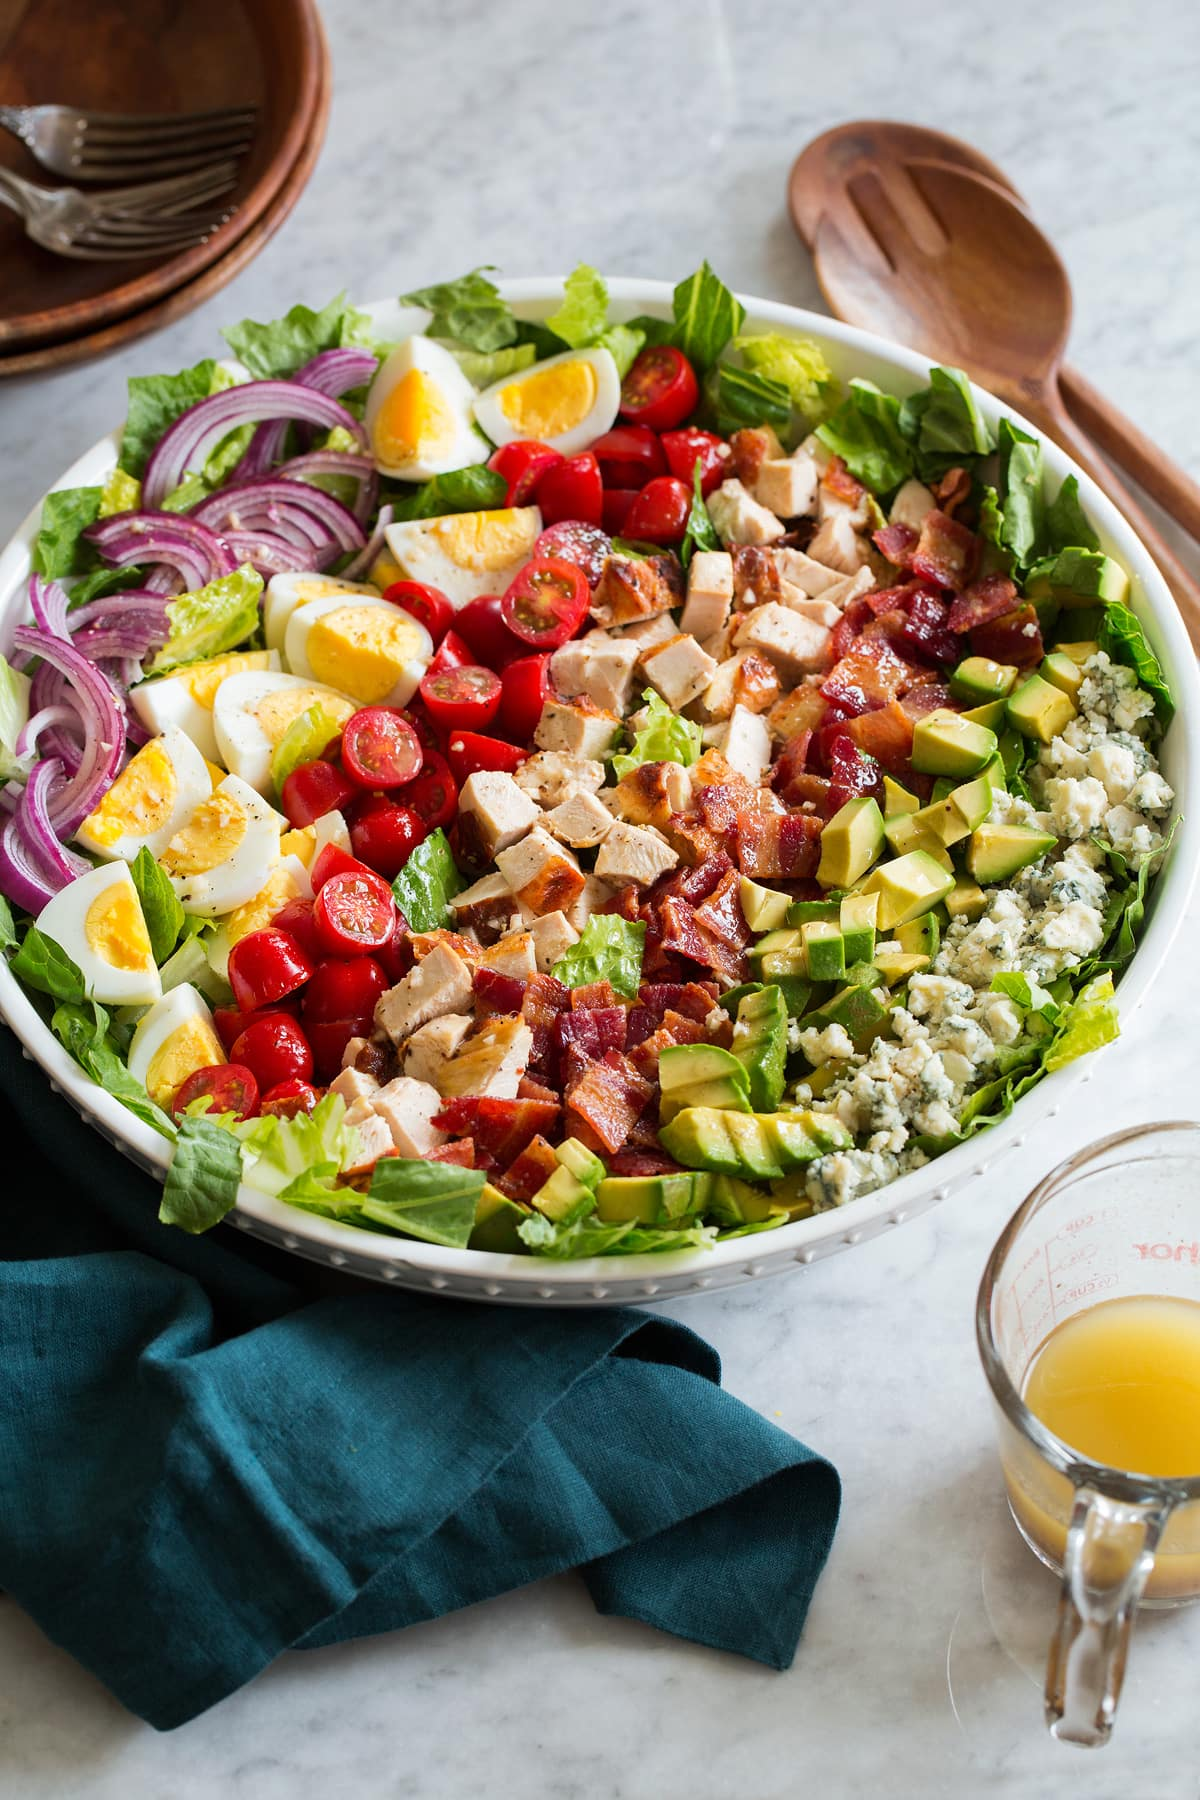 Cobb salad shown from the side on a marble surface.